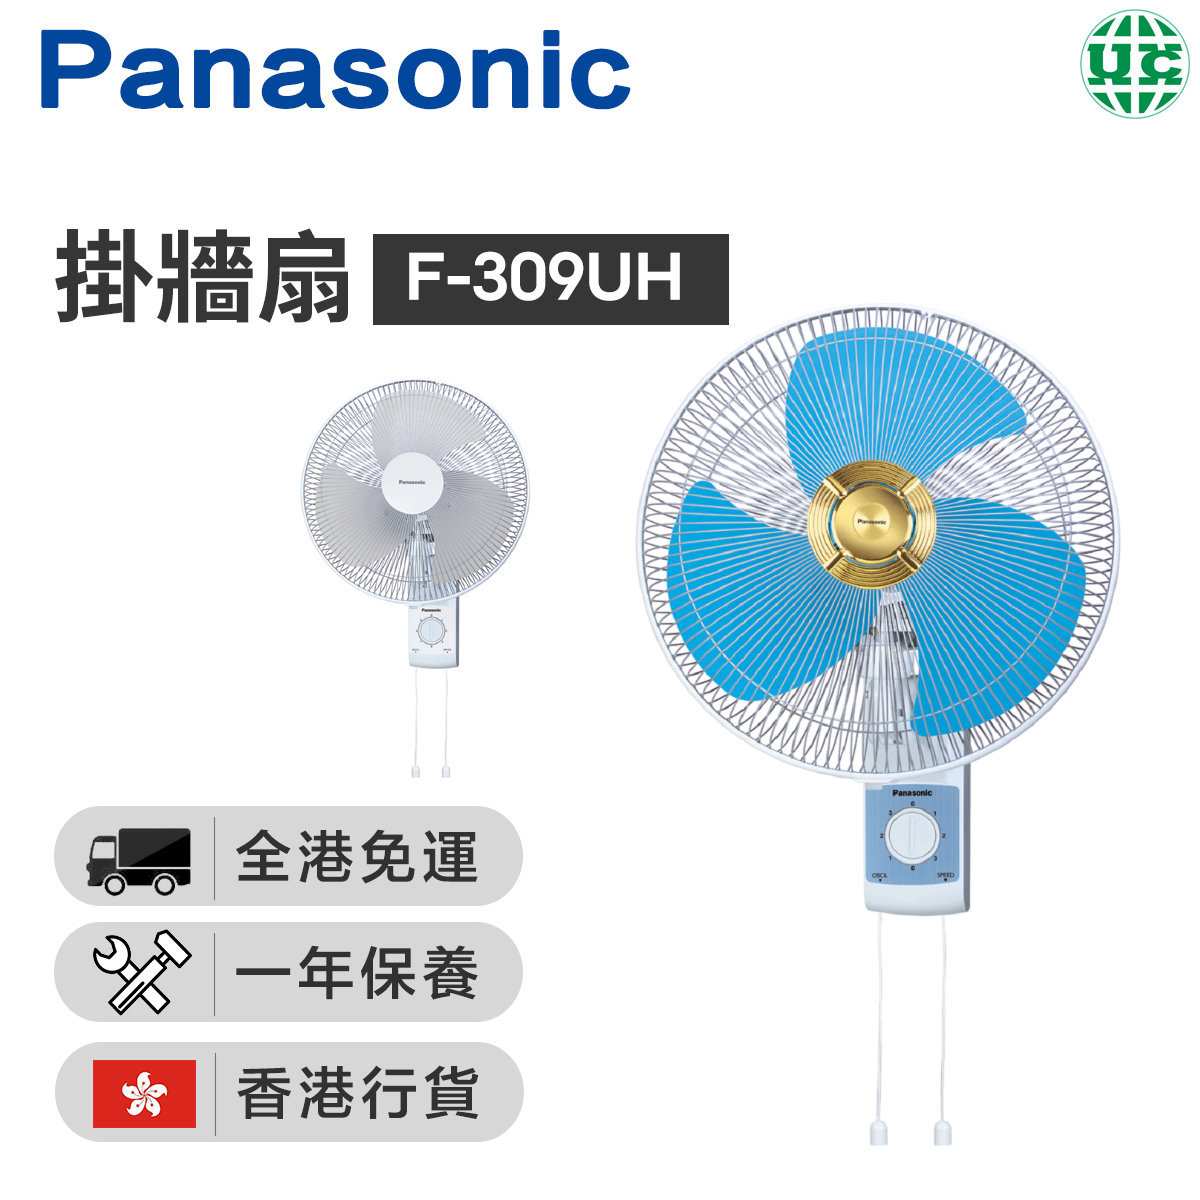 F-309UH wall fan (30cm /12 inches)(blue)(Hong Kong licensed)